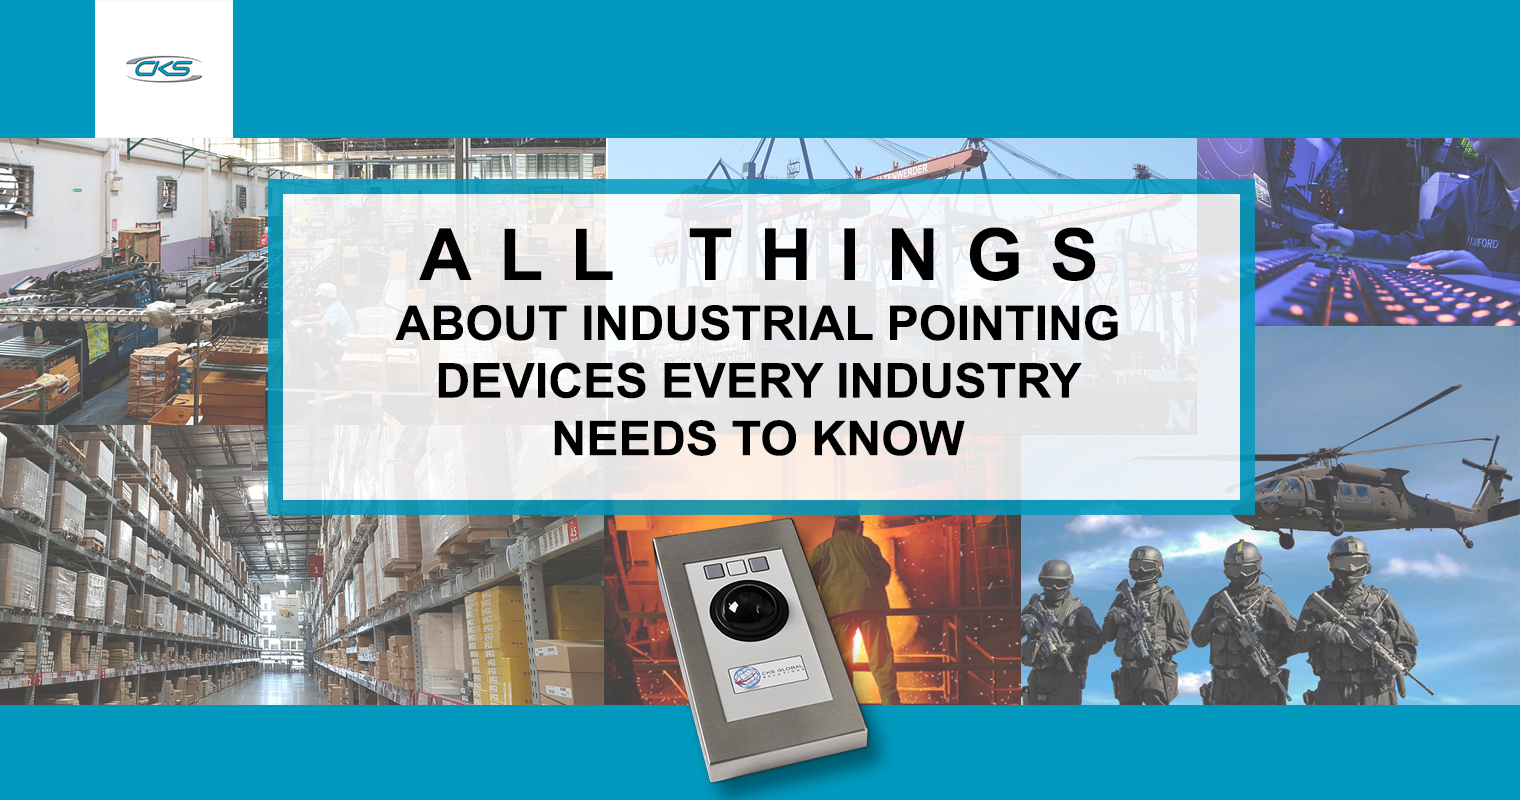 An Introduction to Industrial Pointing Devices and its Main Functions